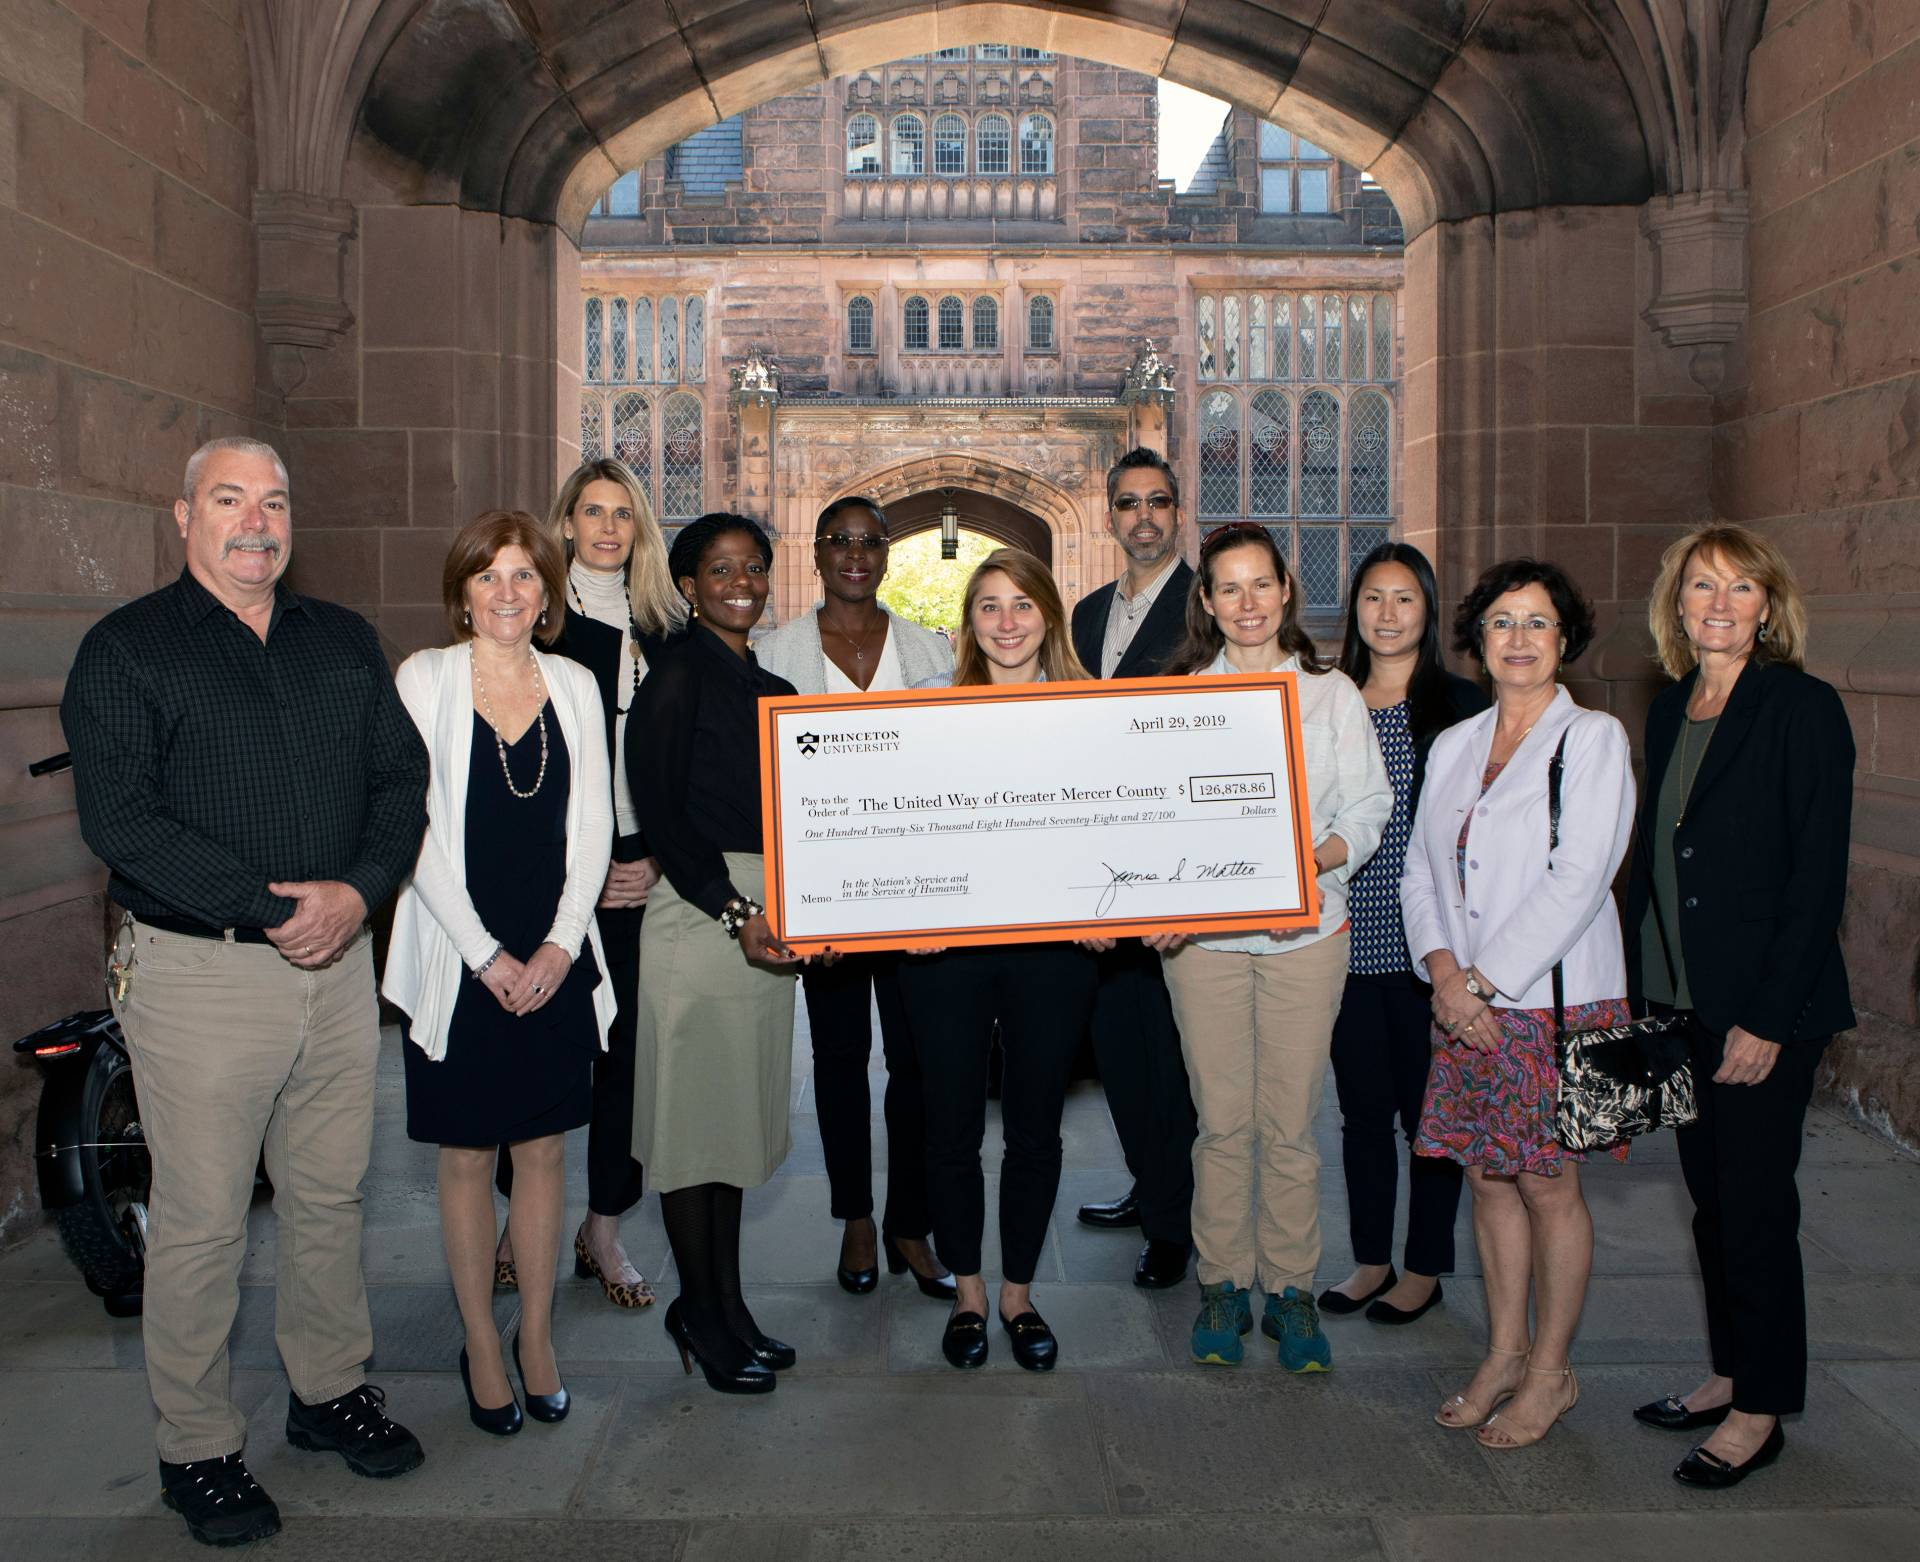 Staff members pose with a giant check from Princeton to the United Way